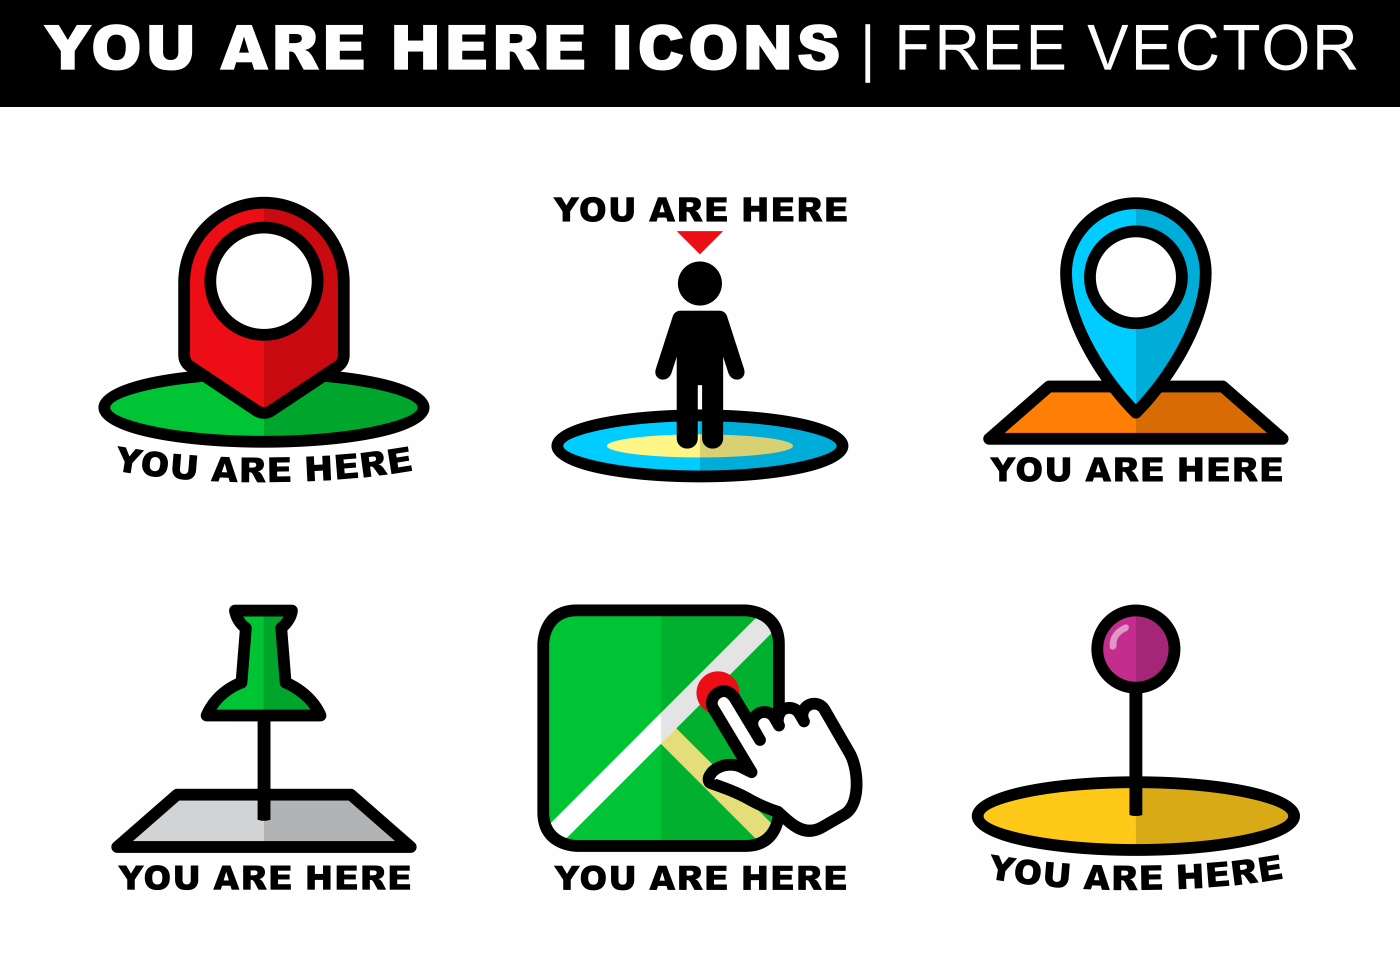 You Are Here Icons Free Vector - Download Free Vectors ...